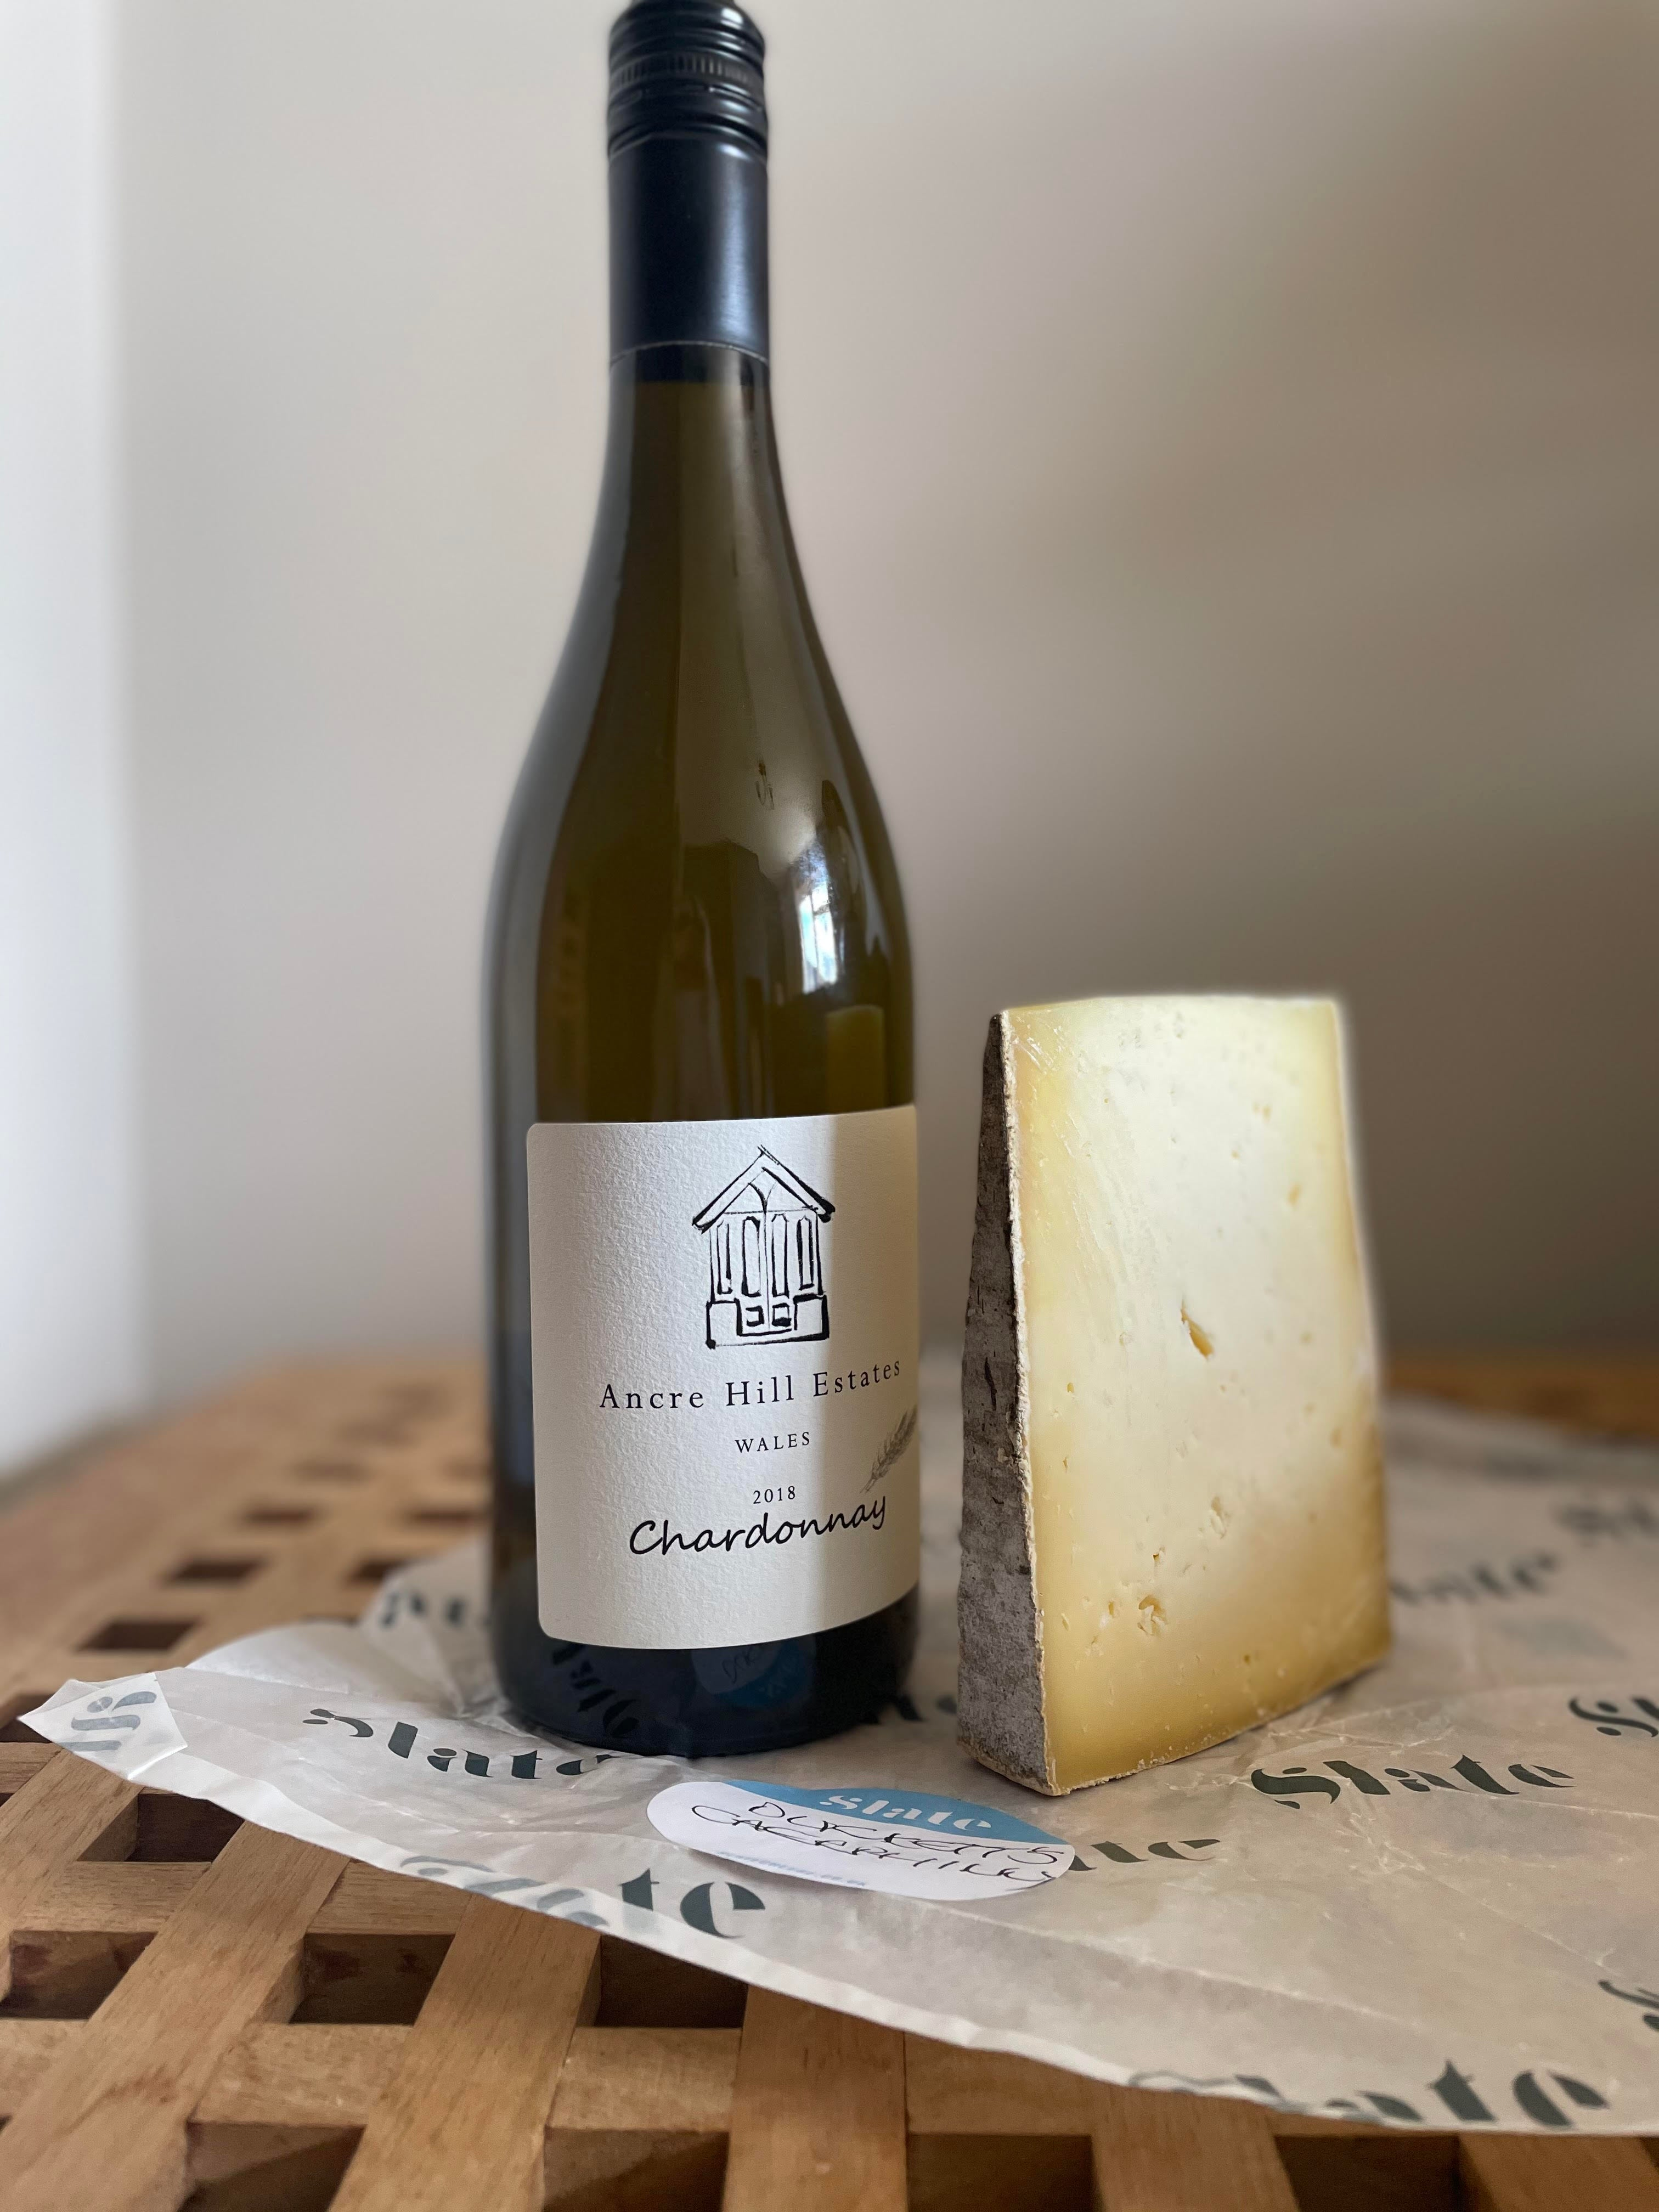 Duckett's Caerphilly with a bottle of Ancre Hill Estate Chardonnay 2018